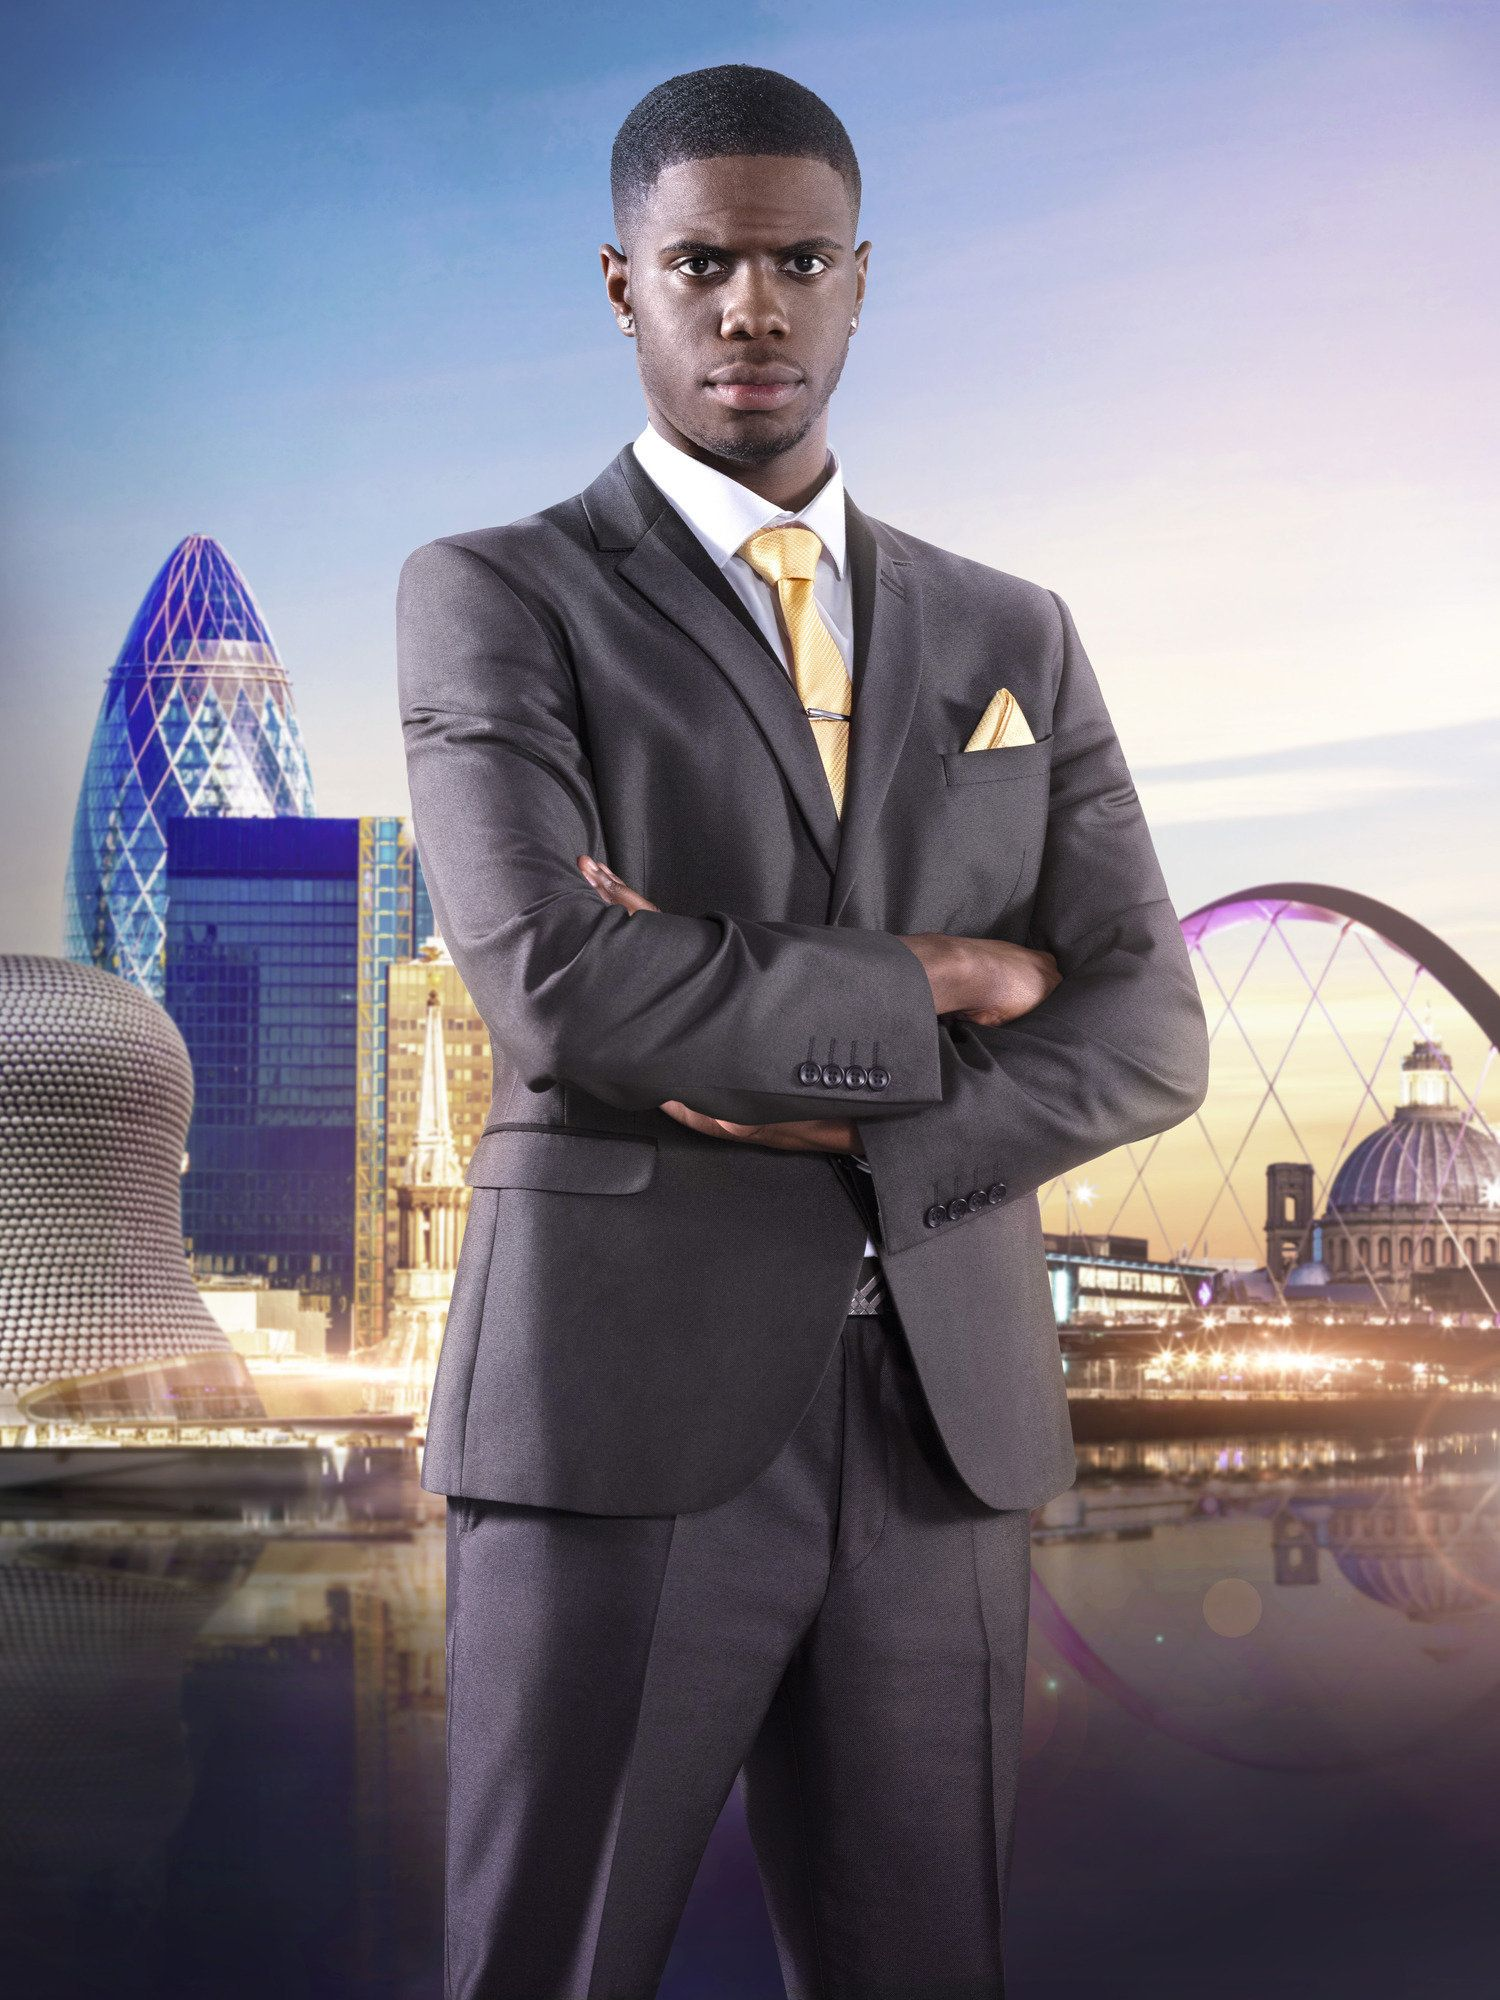 'The Apprentice' Fans Spot Unfortunate Photoshop Fail In This Year's Official Contestant